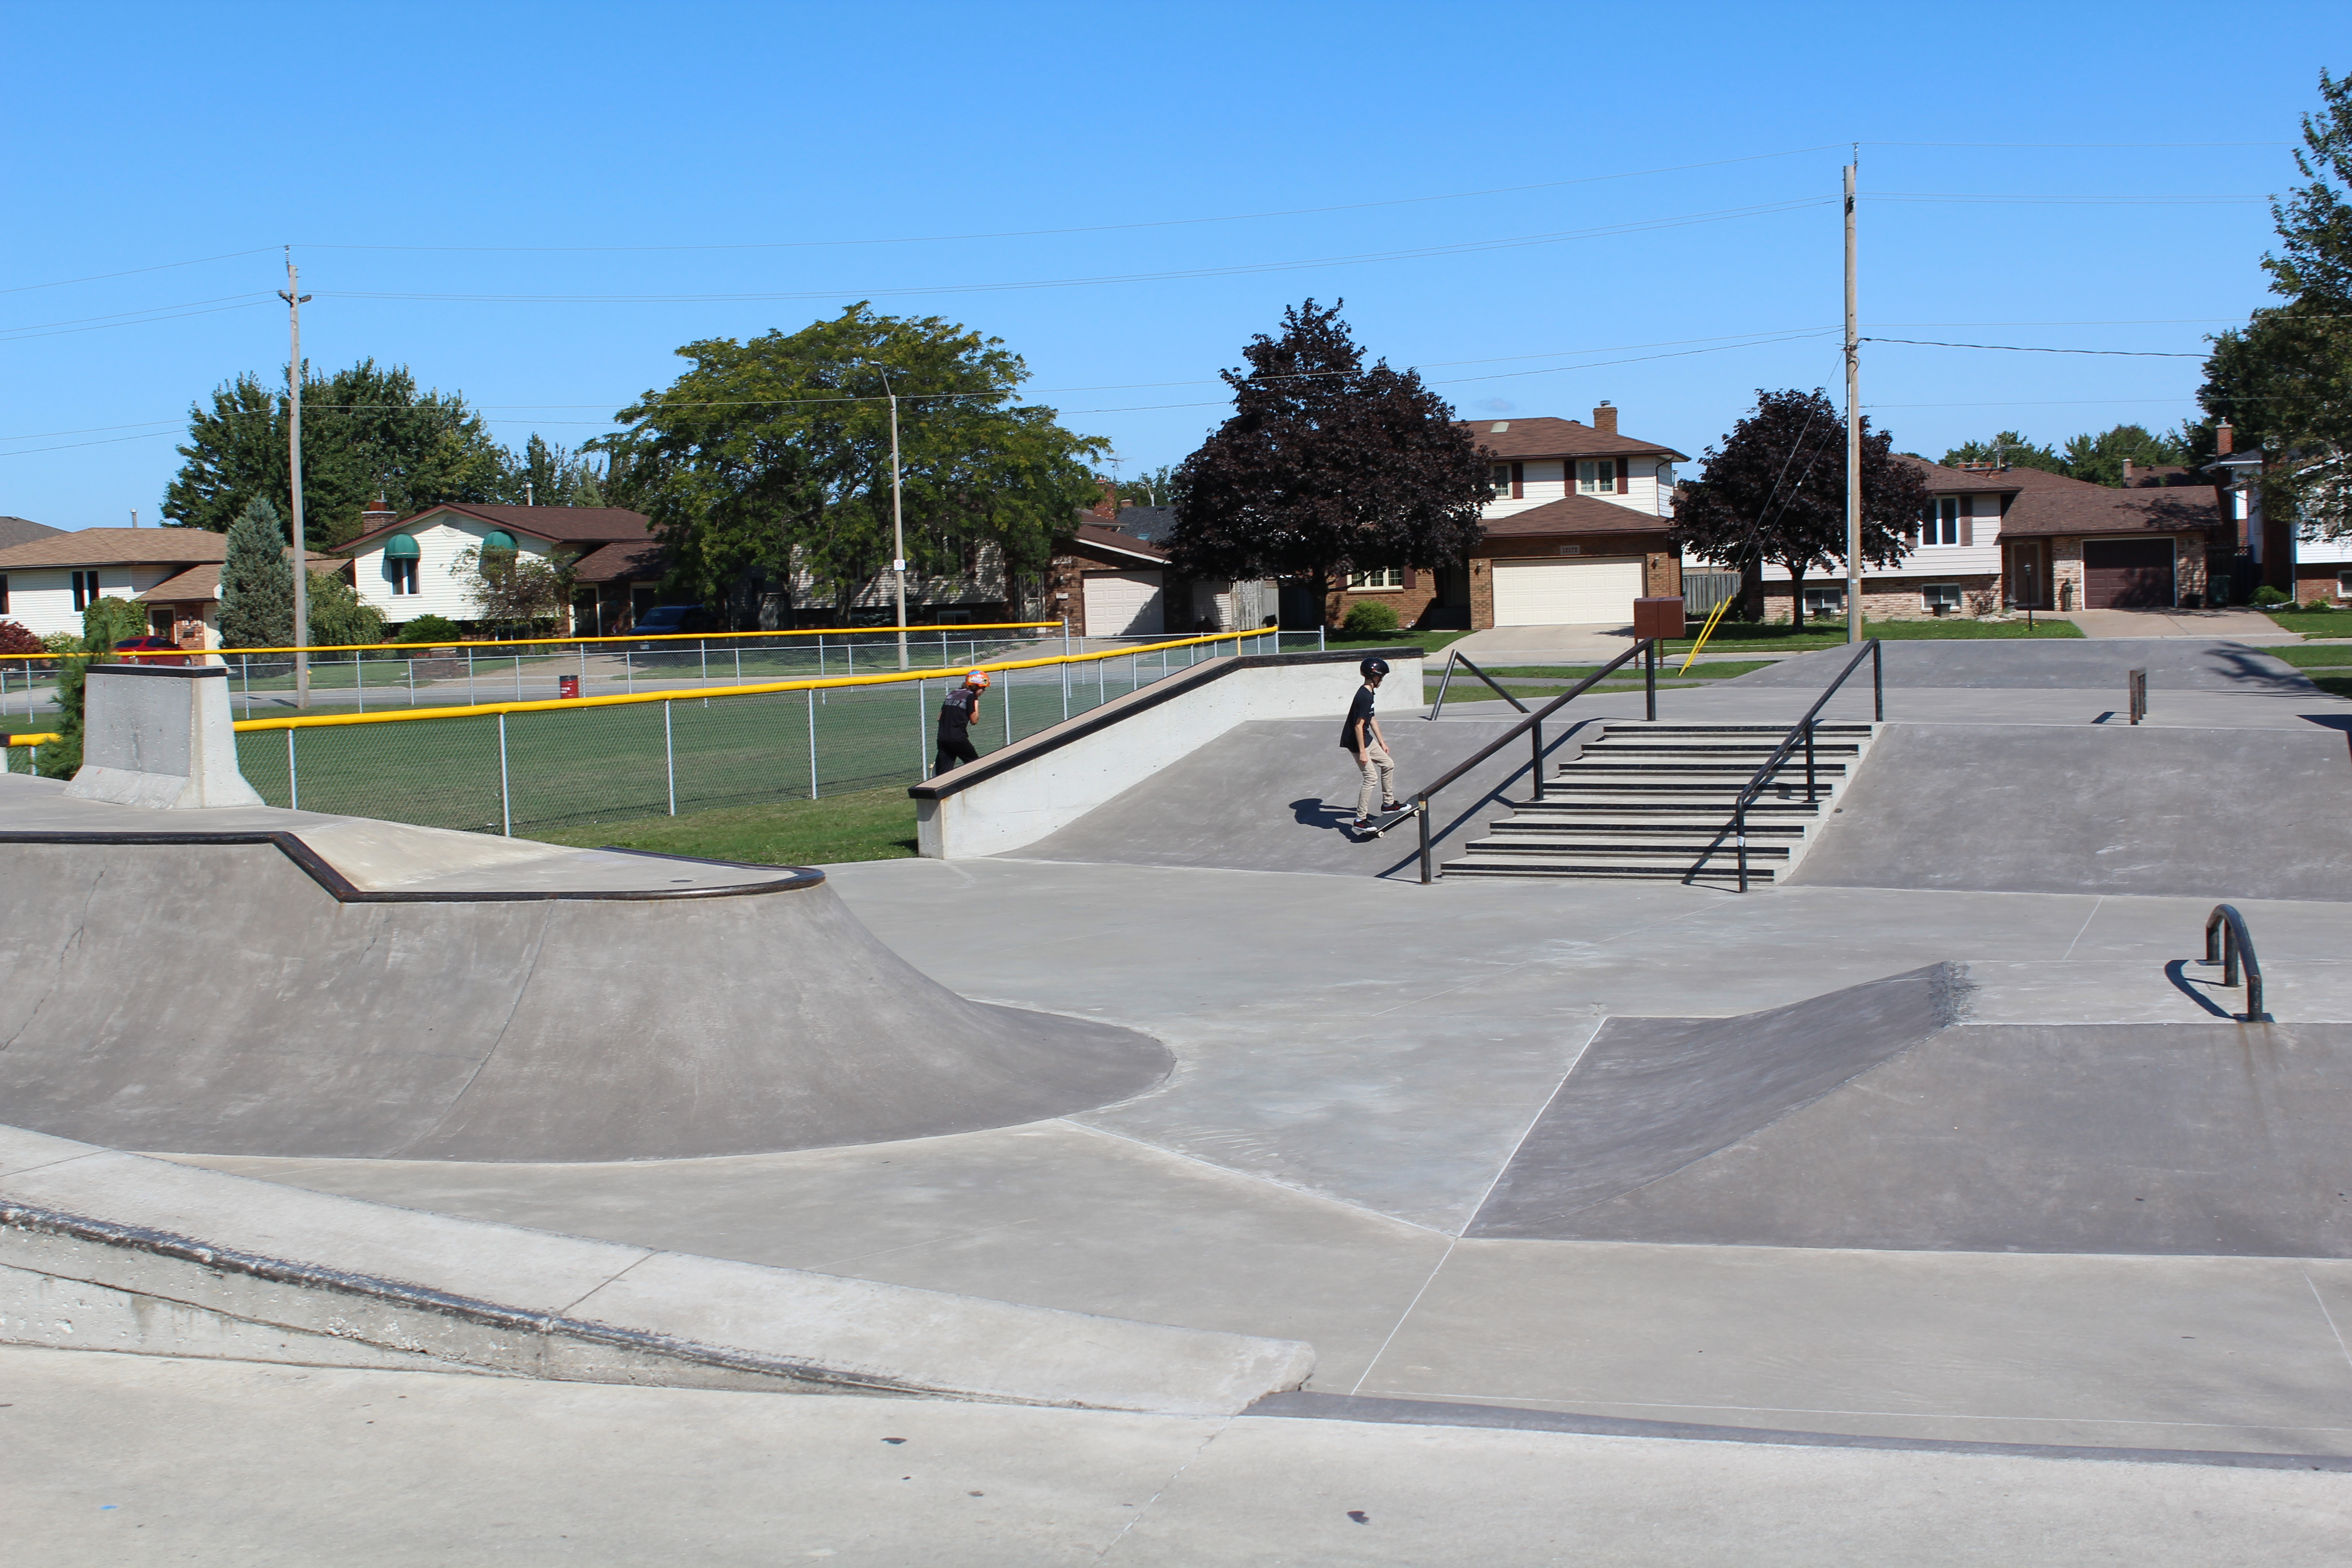 image of the Towns skate park